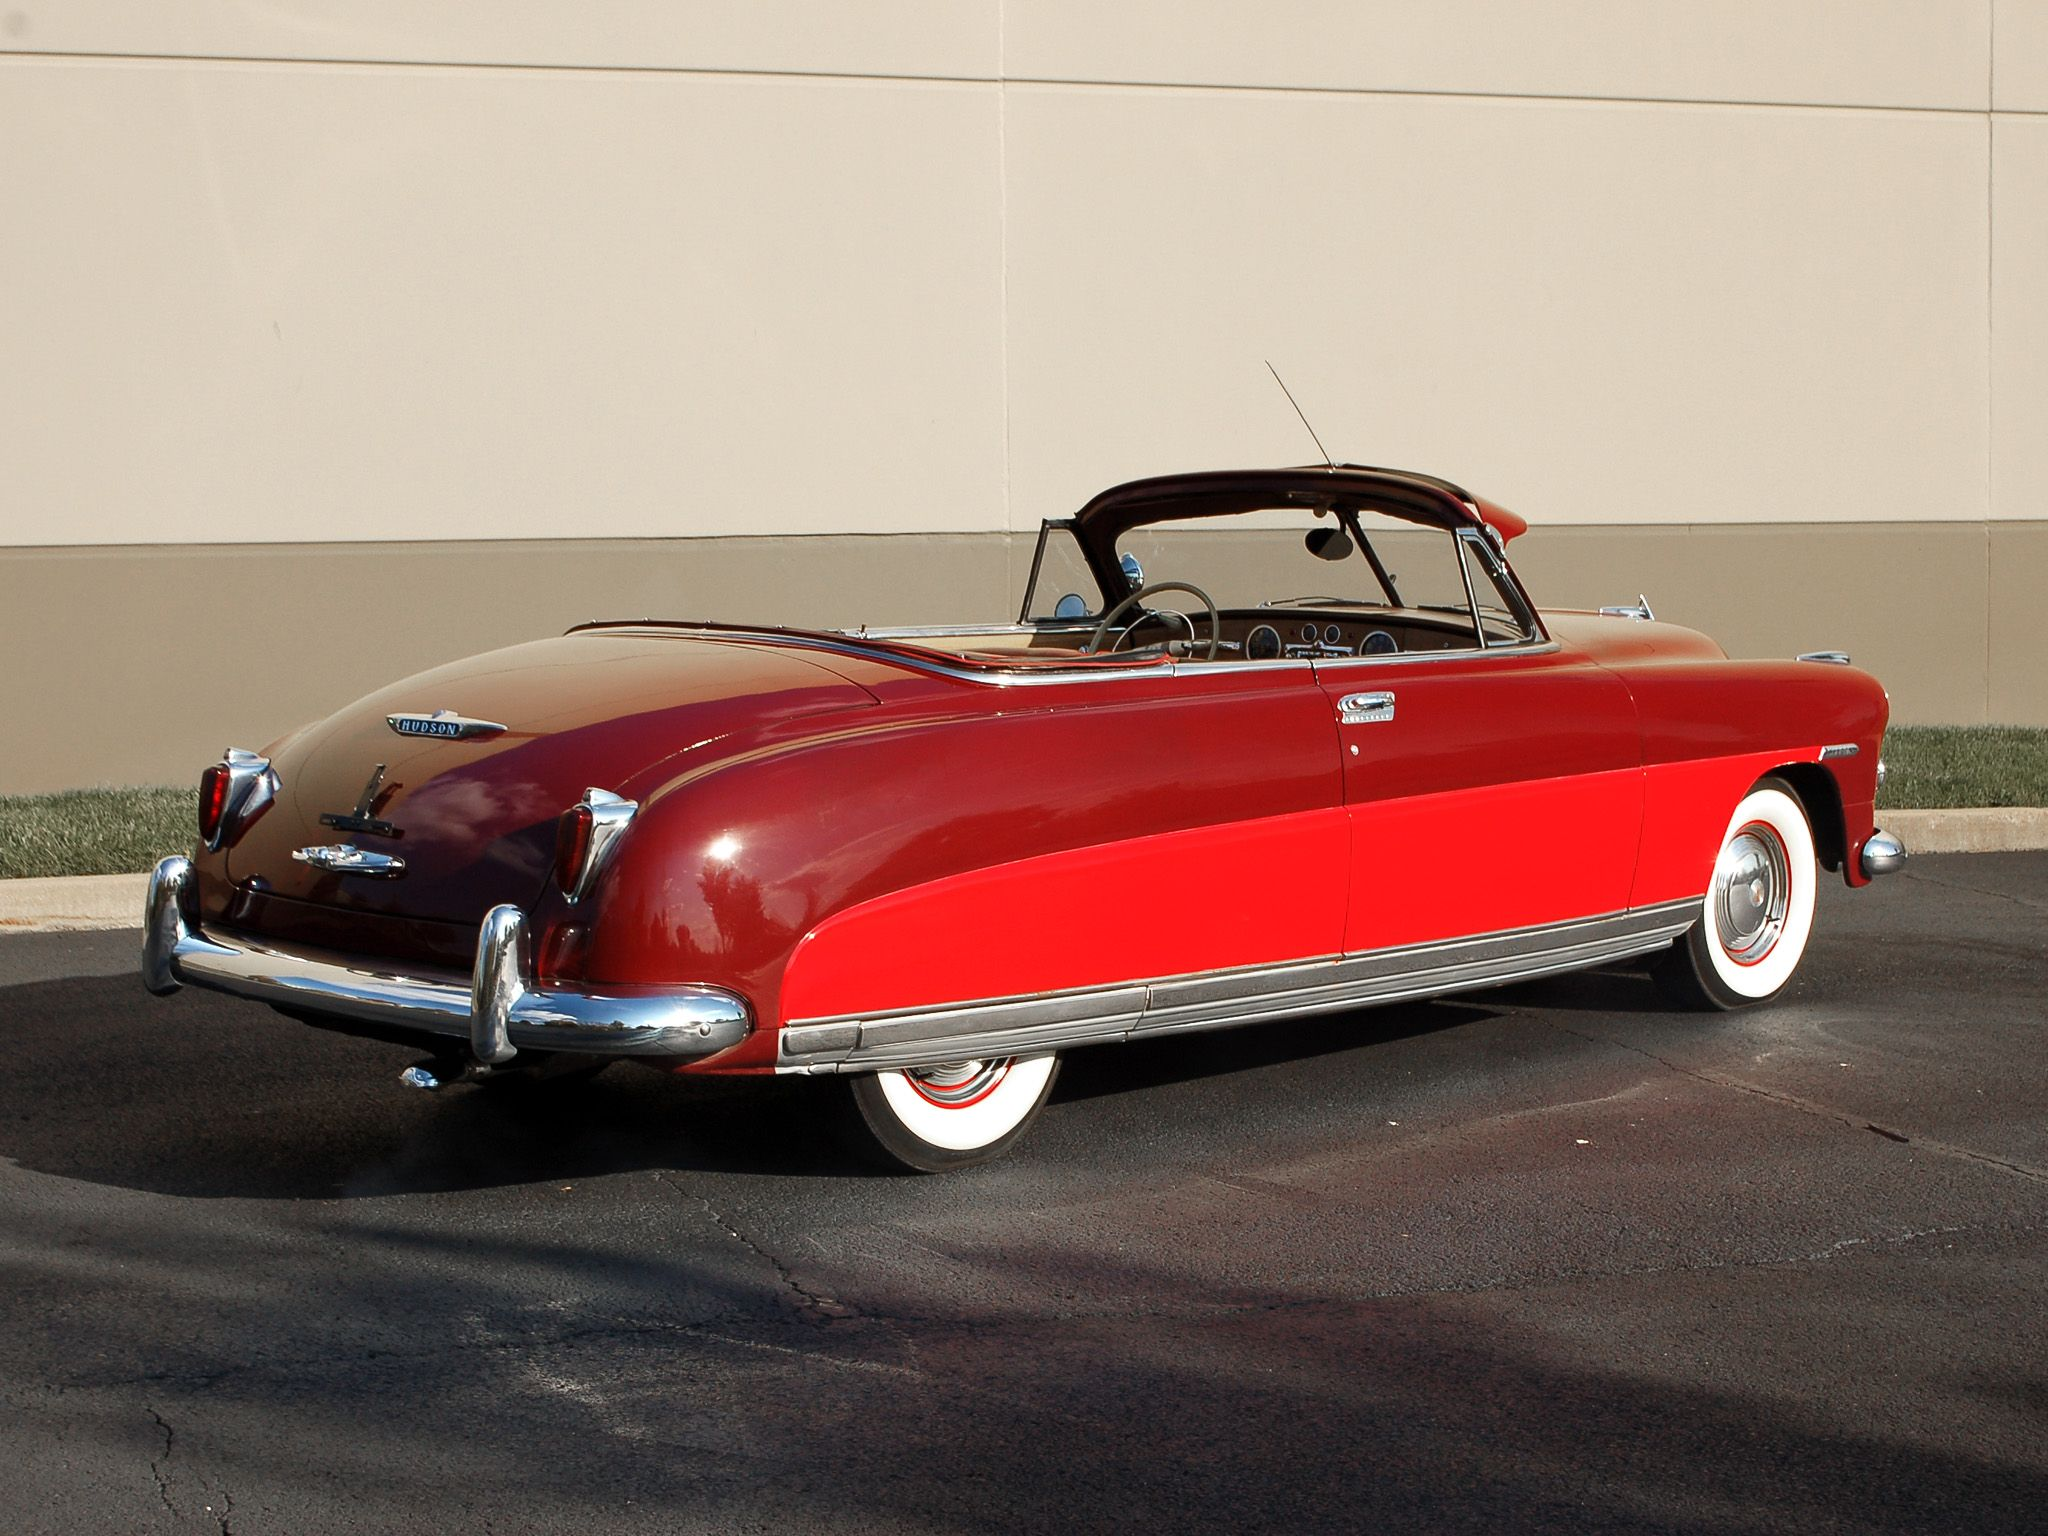 1949 Hudson Commodore Convertible Classic Cars Hudson Commodore Hudson Car